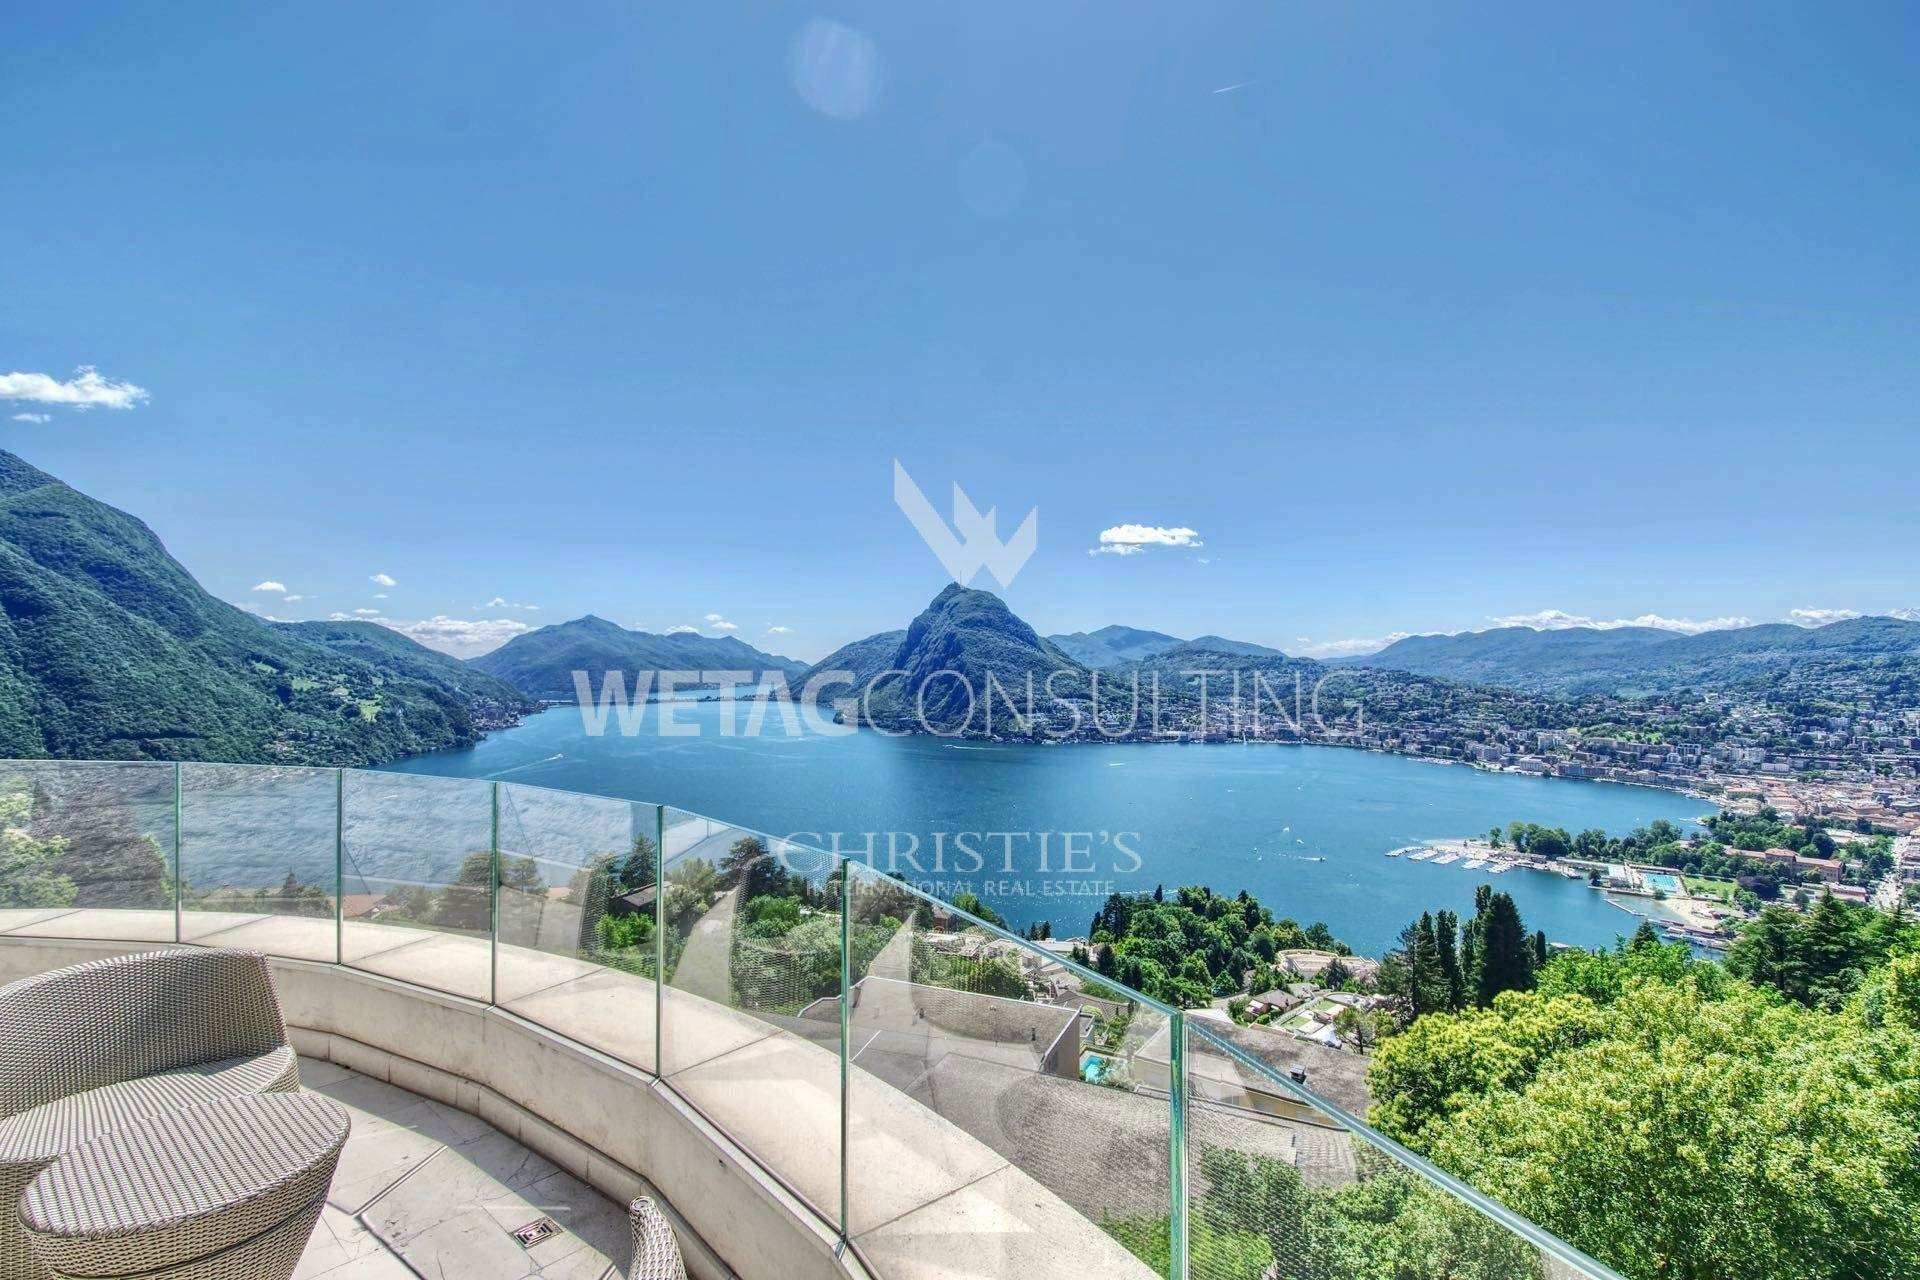 Апартаменты / Квартиры для того Продажа на Luxury duplex-penthouse in Aldesago with wonderful Lake Lugano view Aldesago, Тичино,6974 Швейцария